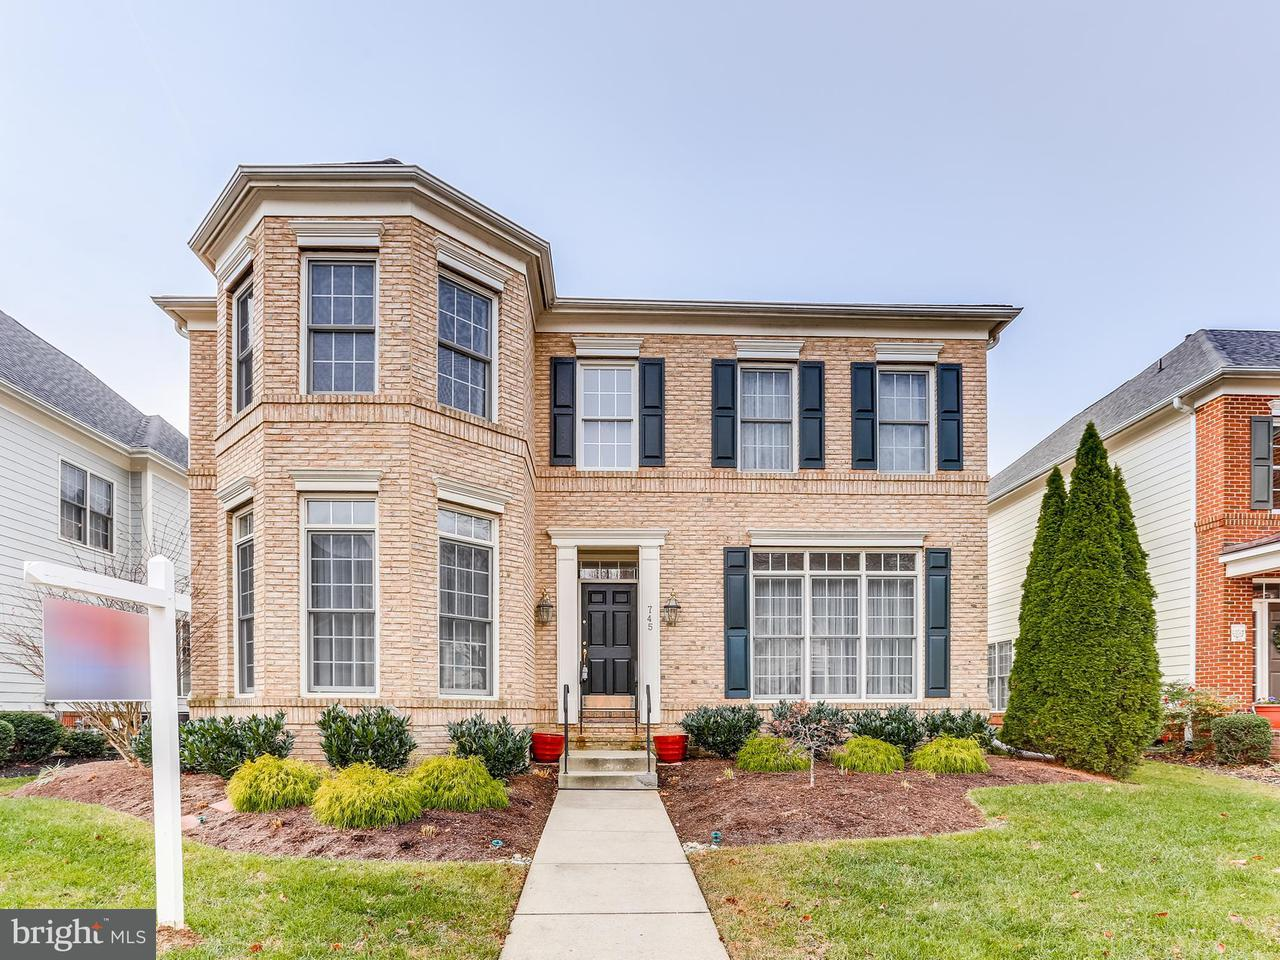 Single Family Home for Sale at 745 Pearson Point Place 745 Pearson Point Place Annapolis, Maryland 21401 United States